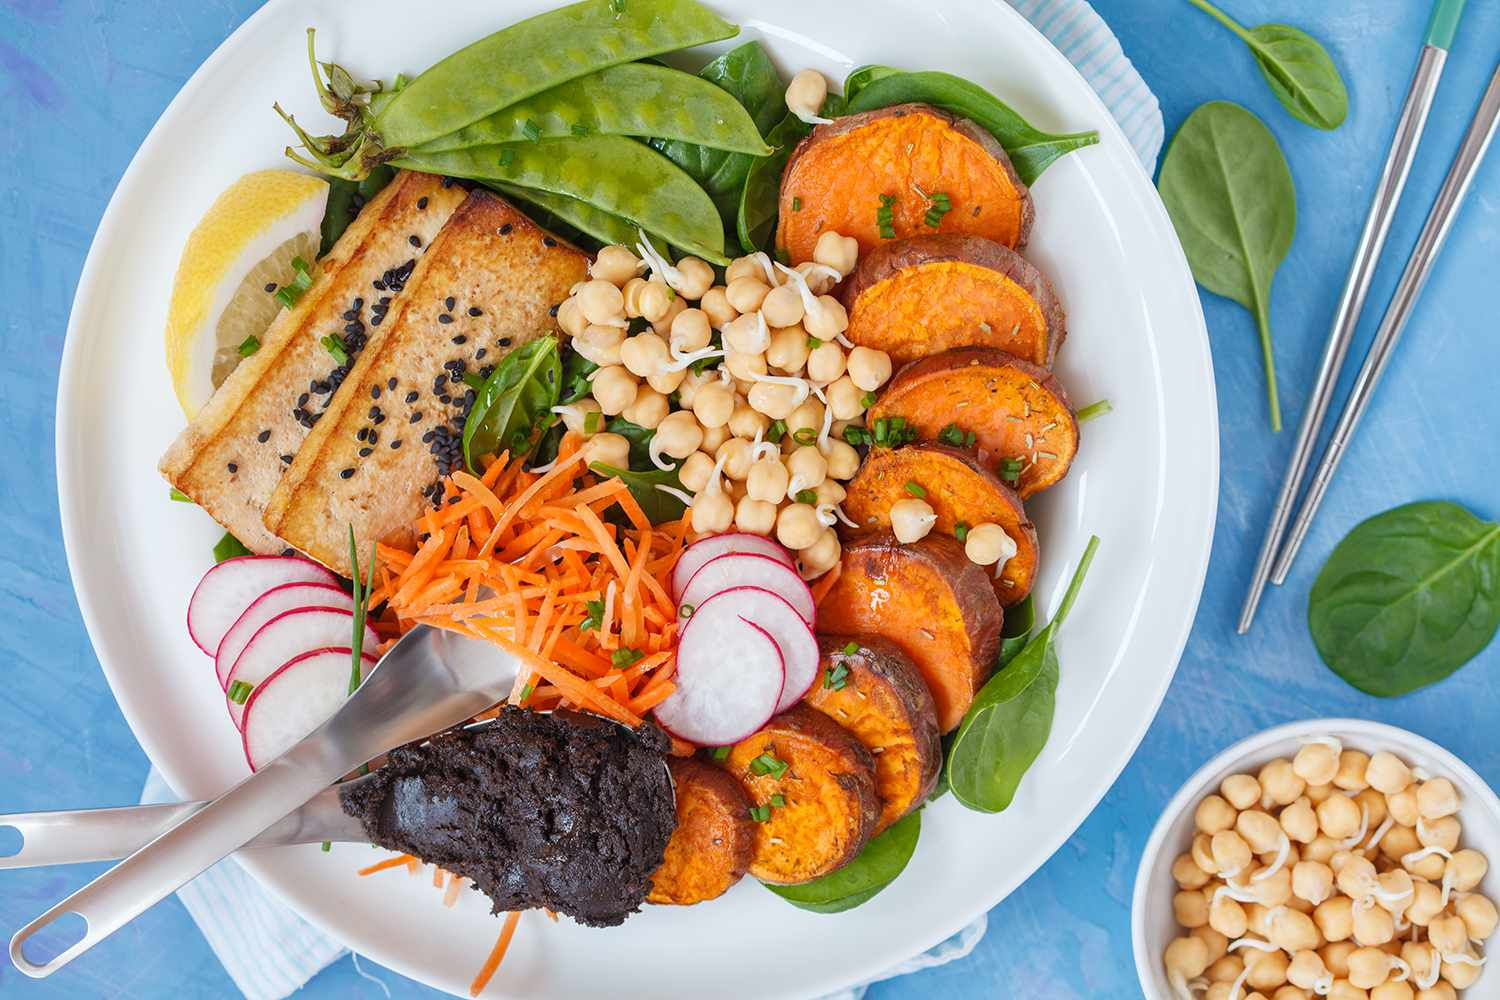 Buddha bowl vegan salad with vegetables, tofu, baked sweet potato, sprouts chickpeas and hemp dressing.